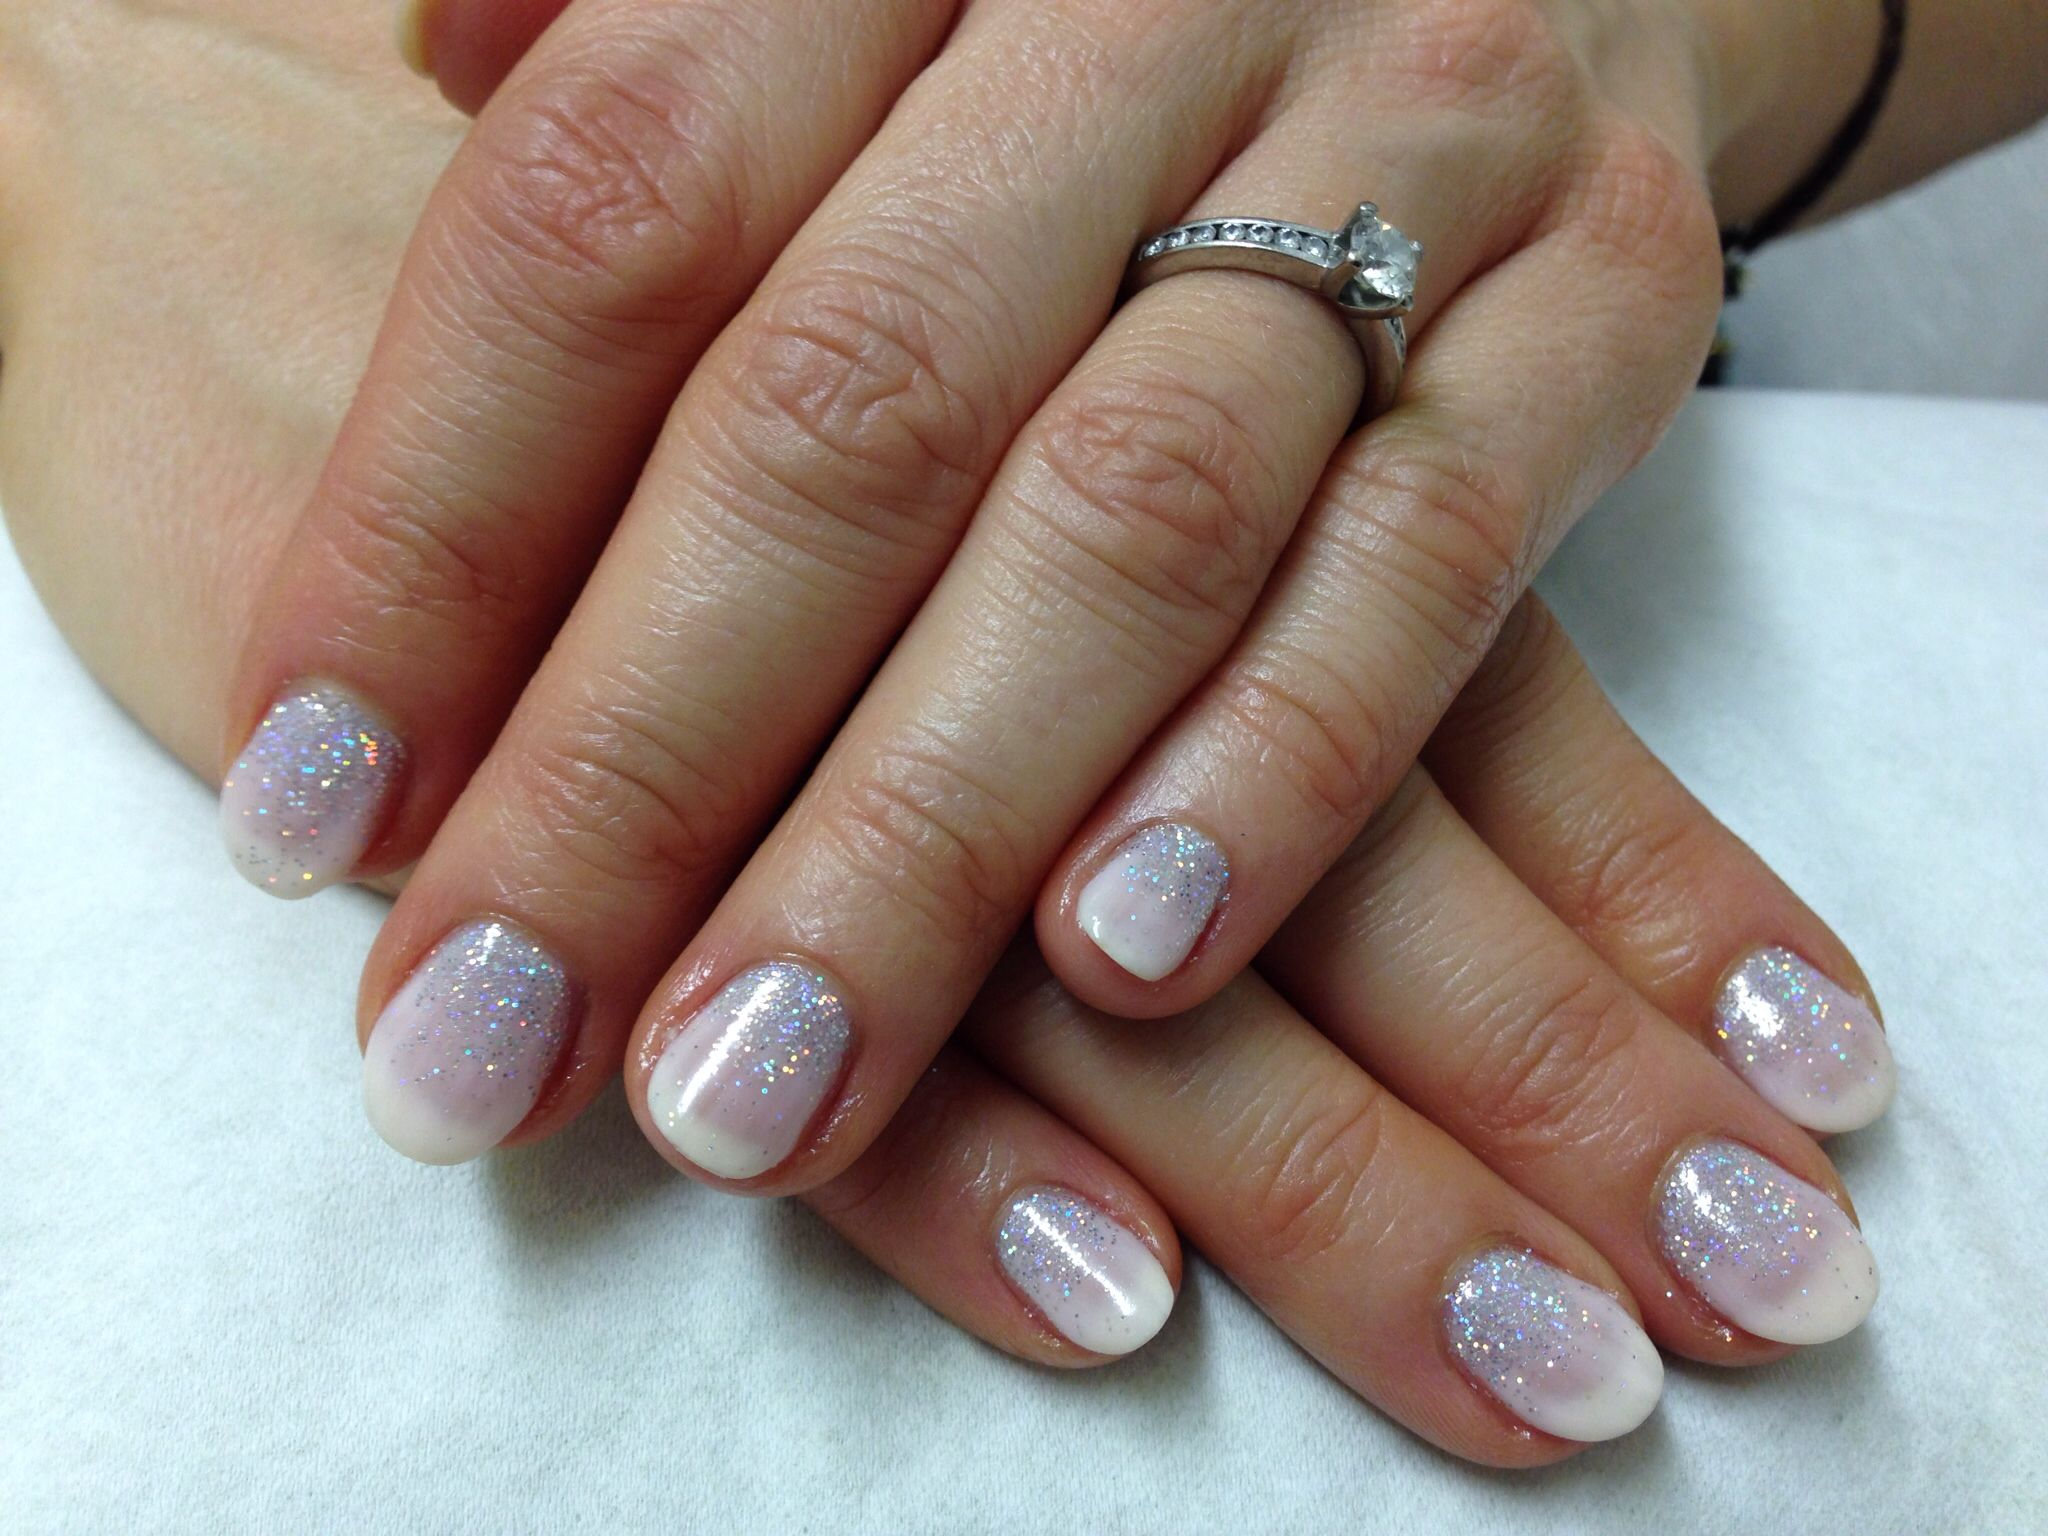 Cnd Shellac Strawberry Smoothie Layered With Romantique